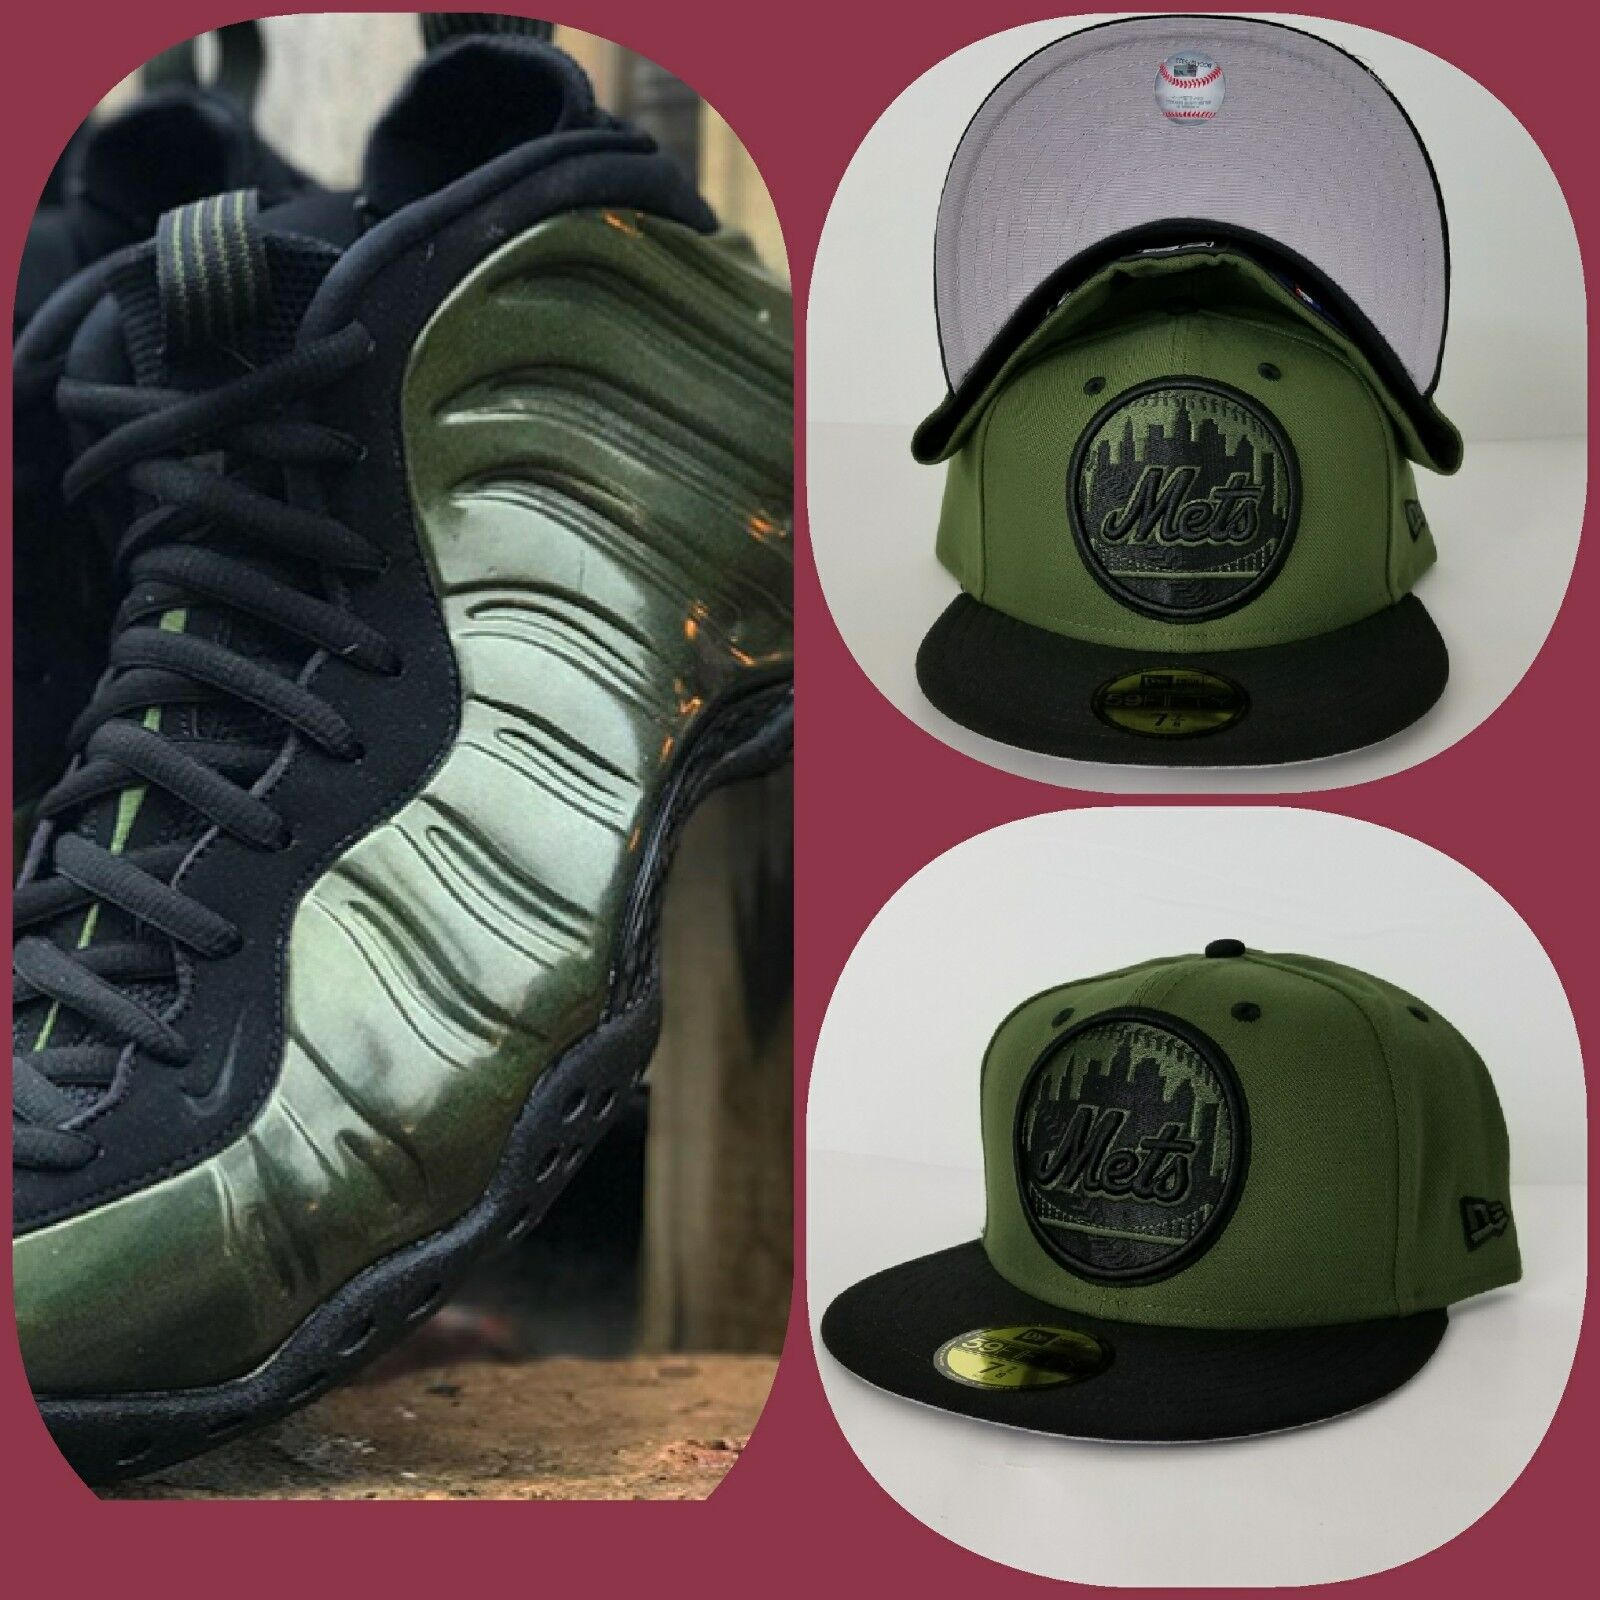 bdc81b6d1f8 Details about New Era NY Mets 59Fifty Fitted hat for Nike Foamposite One  Legion Green Foams